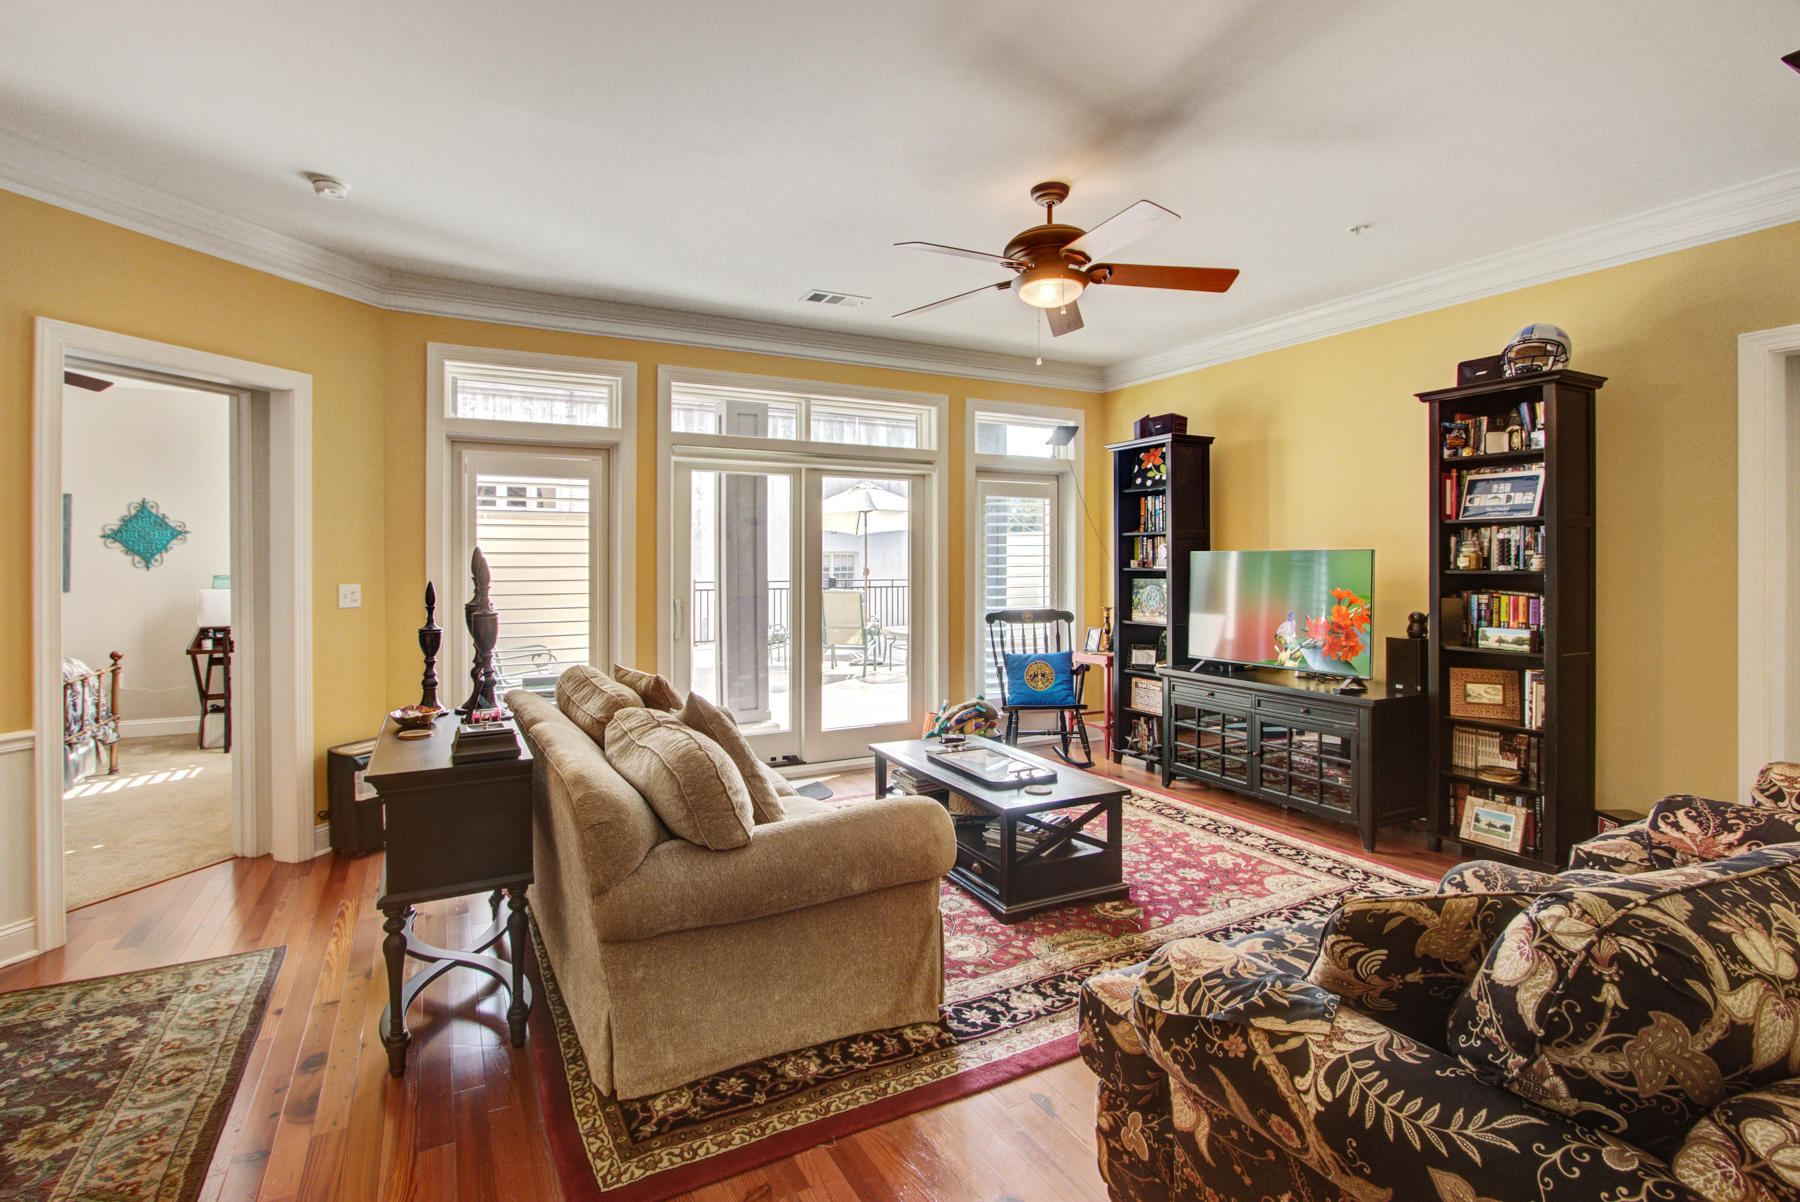 George And Society Condos For Sale - 76 Society, Charleston, SC - 10